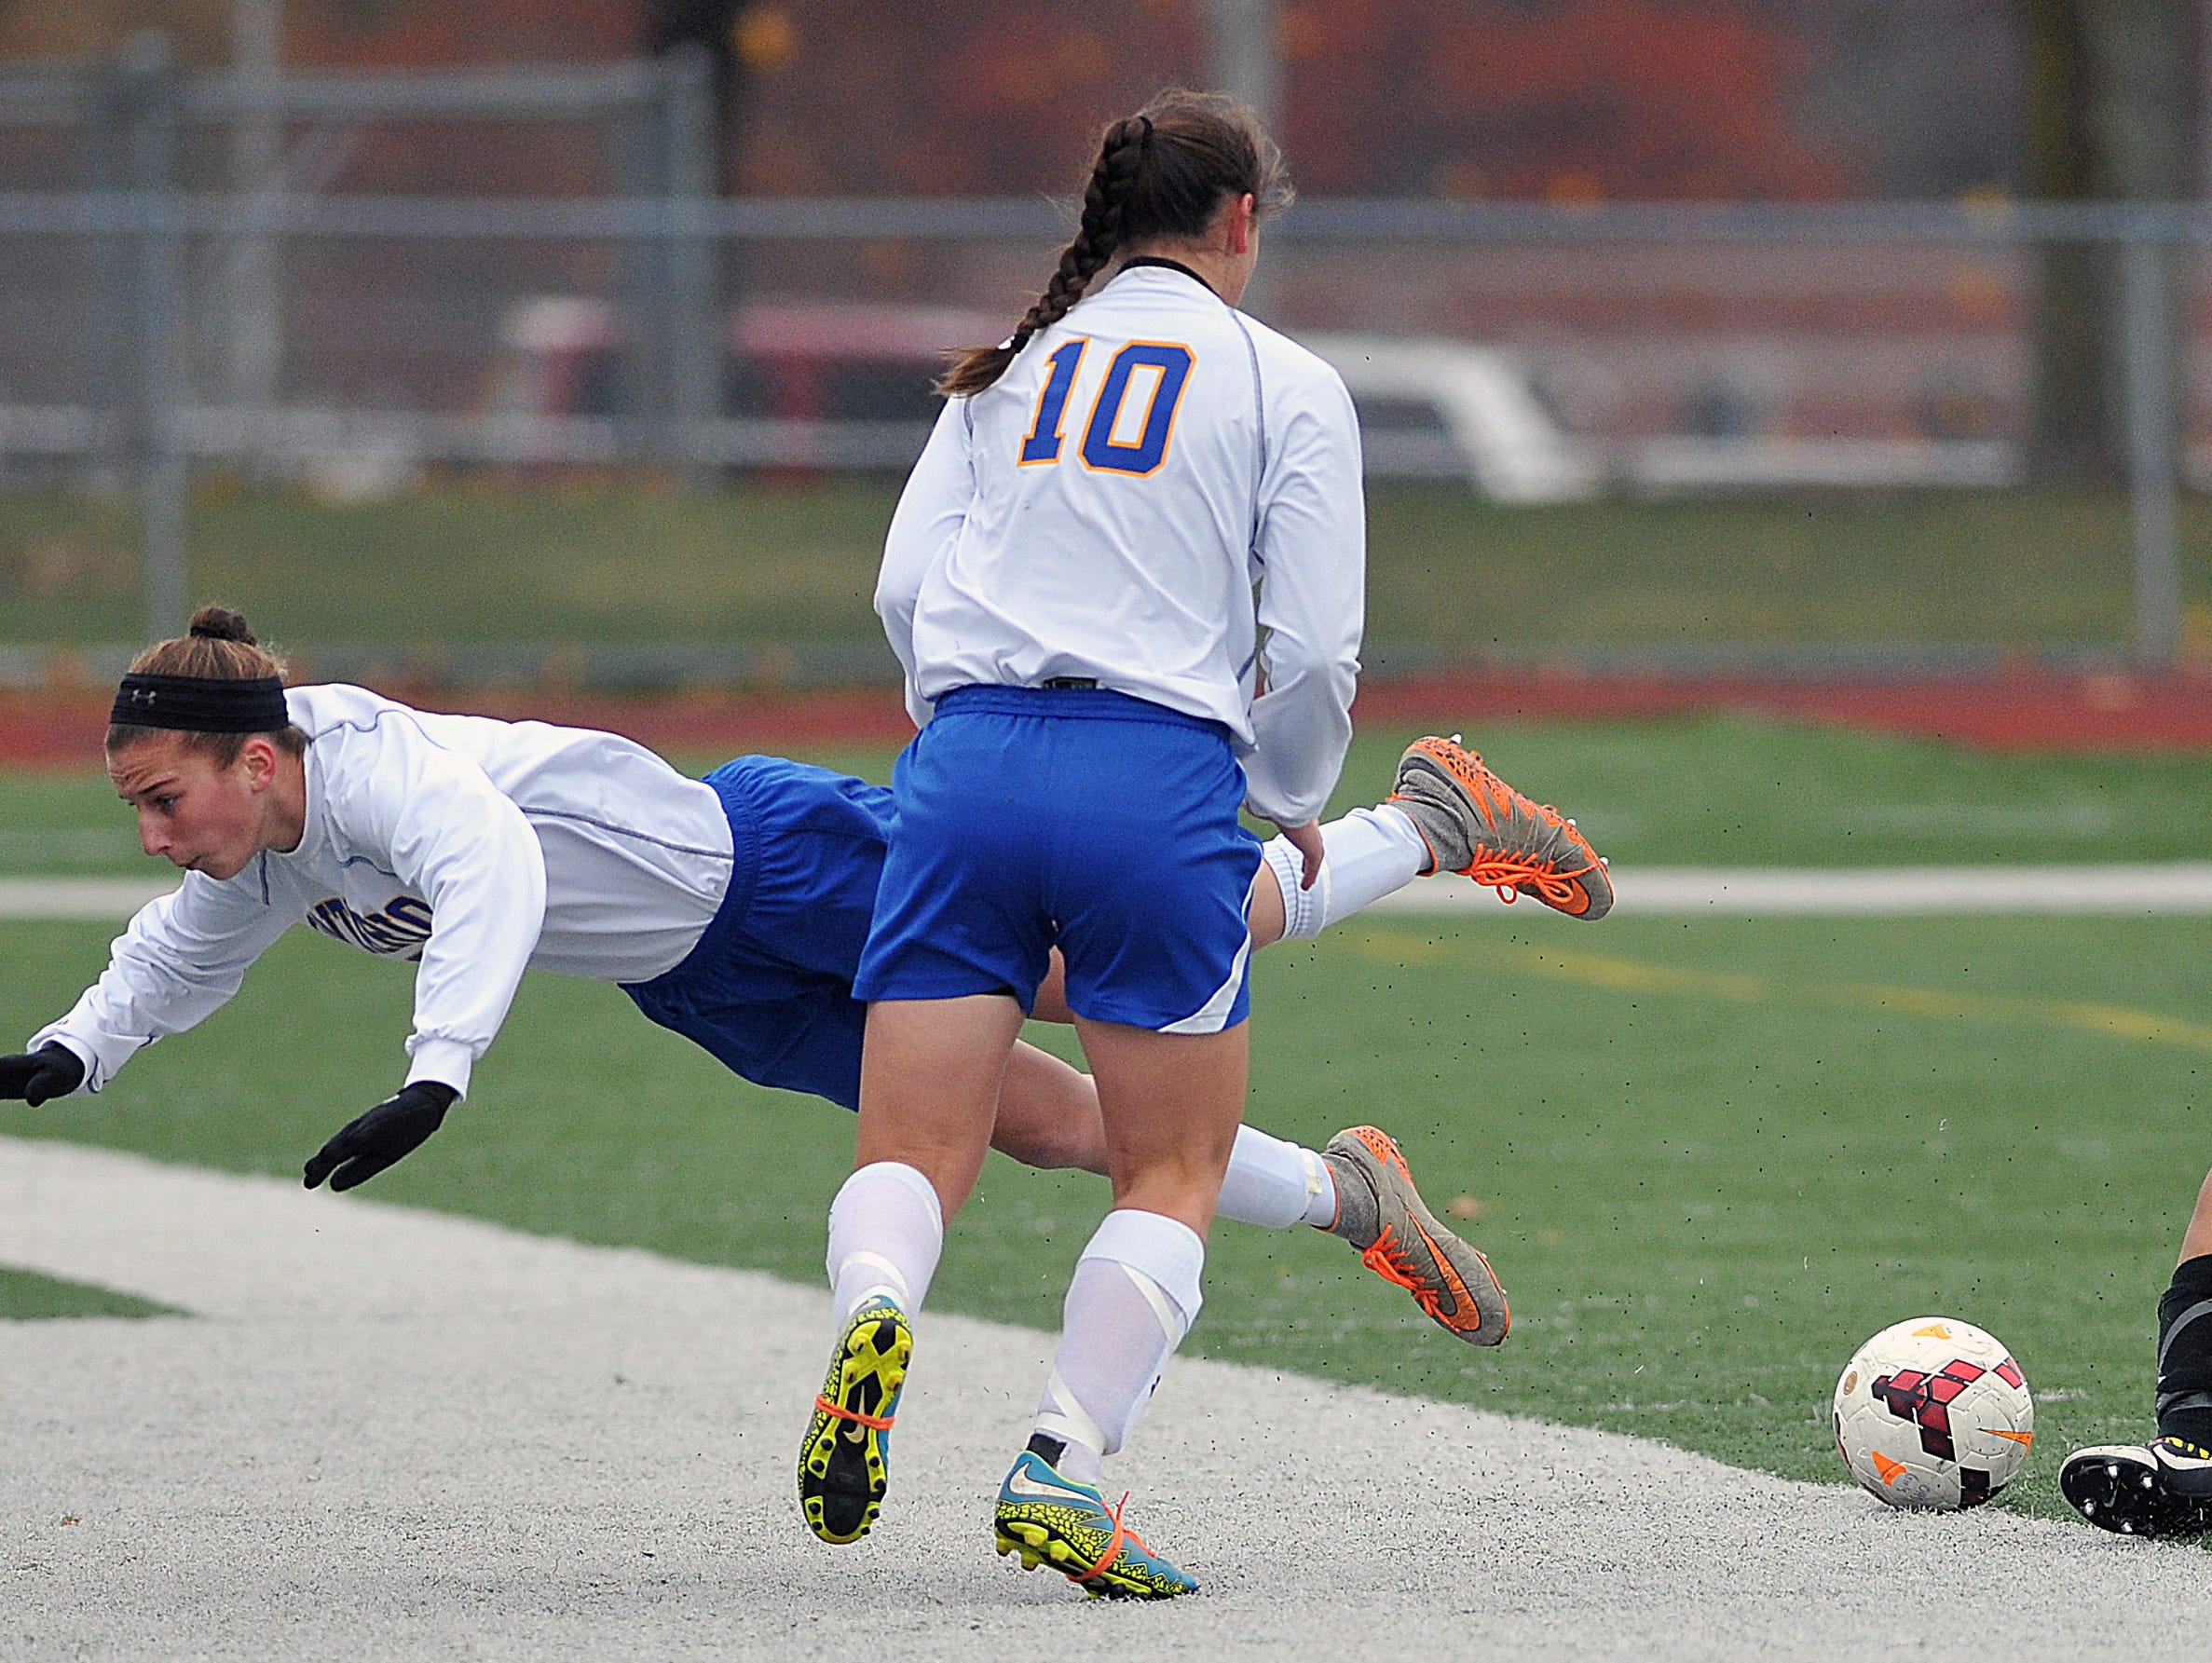 Ontario's Alexis Bise goes flying after a collision with Clear Fork's LaMeshia Curry girls soccer district championship at Ashland High School.